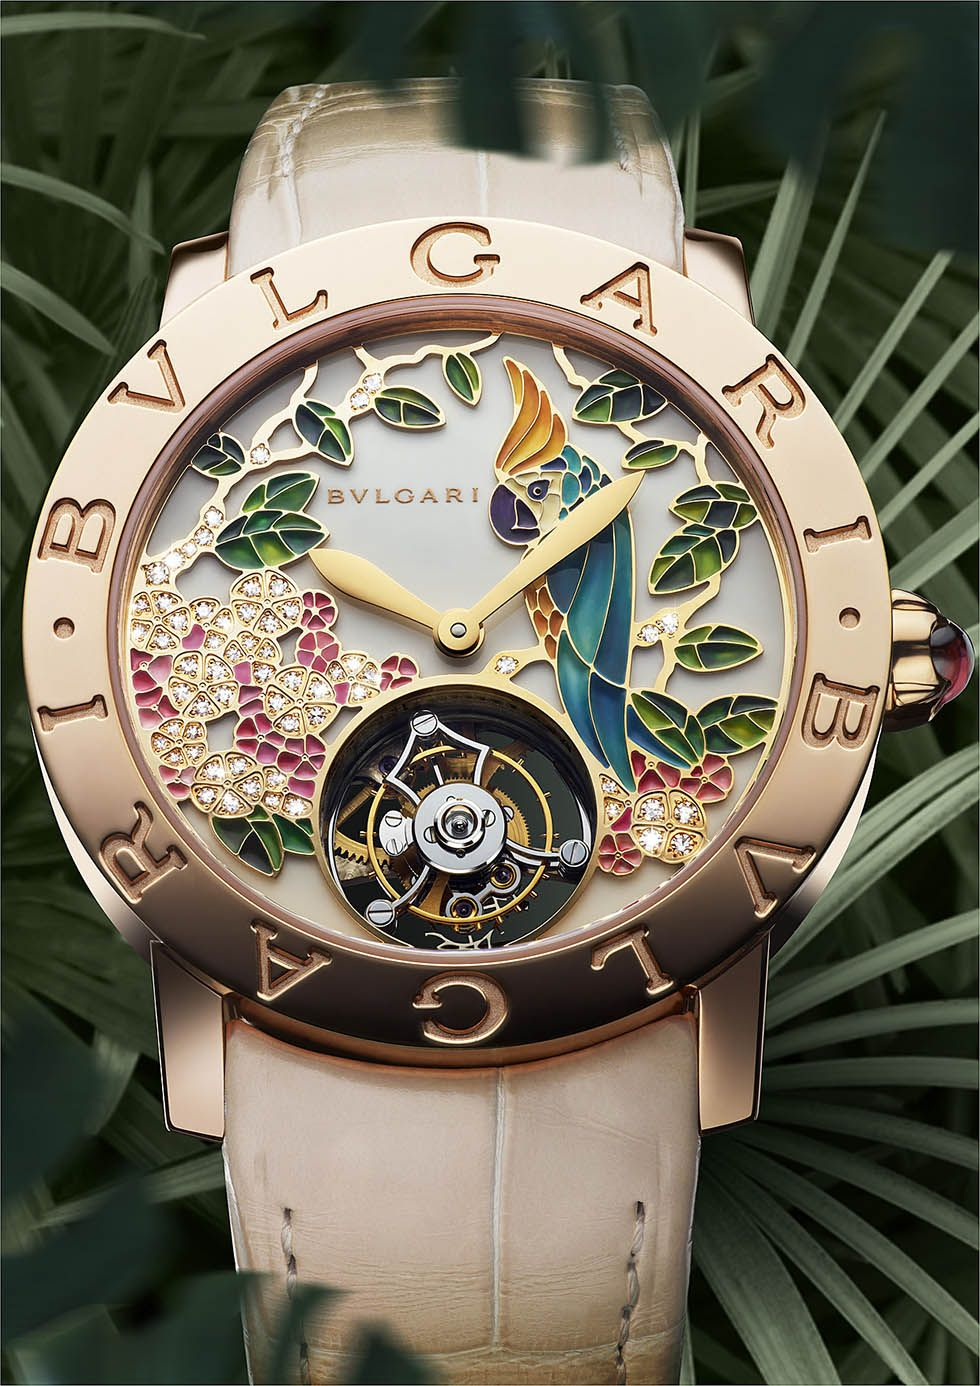 gts s fb bvlgari watches model chrono product com gmt front diagono ss nationalwatch flyback pro